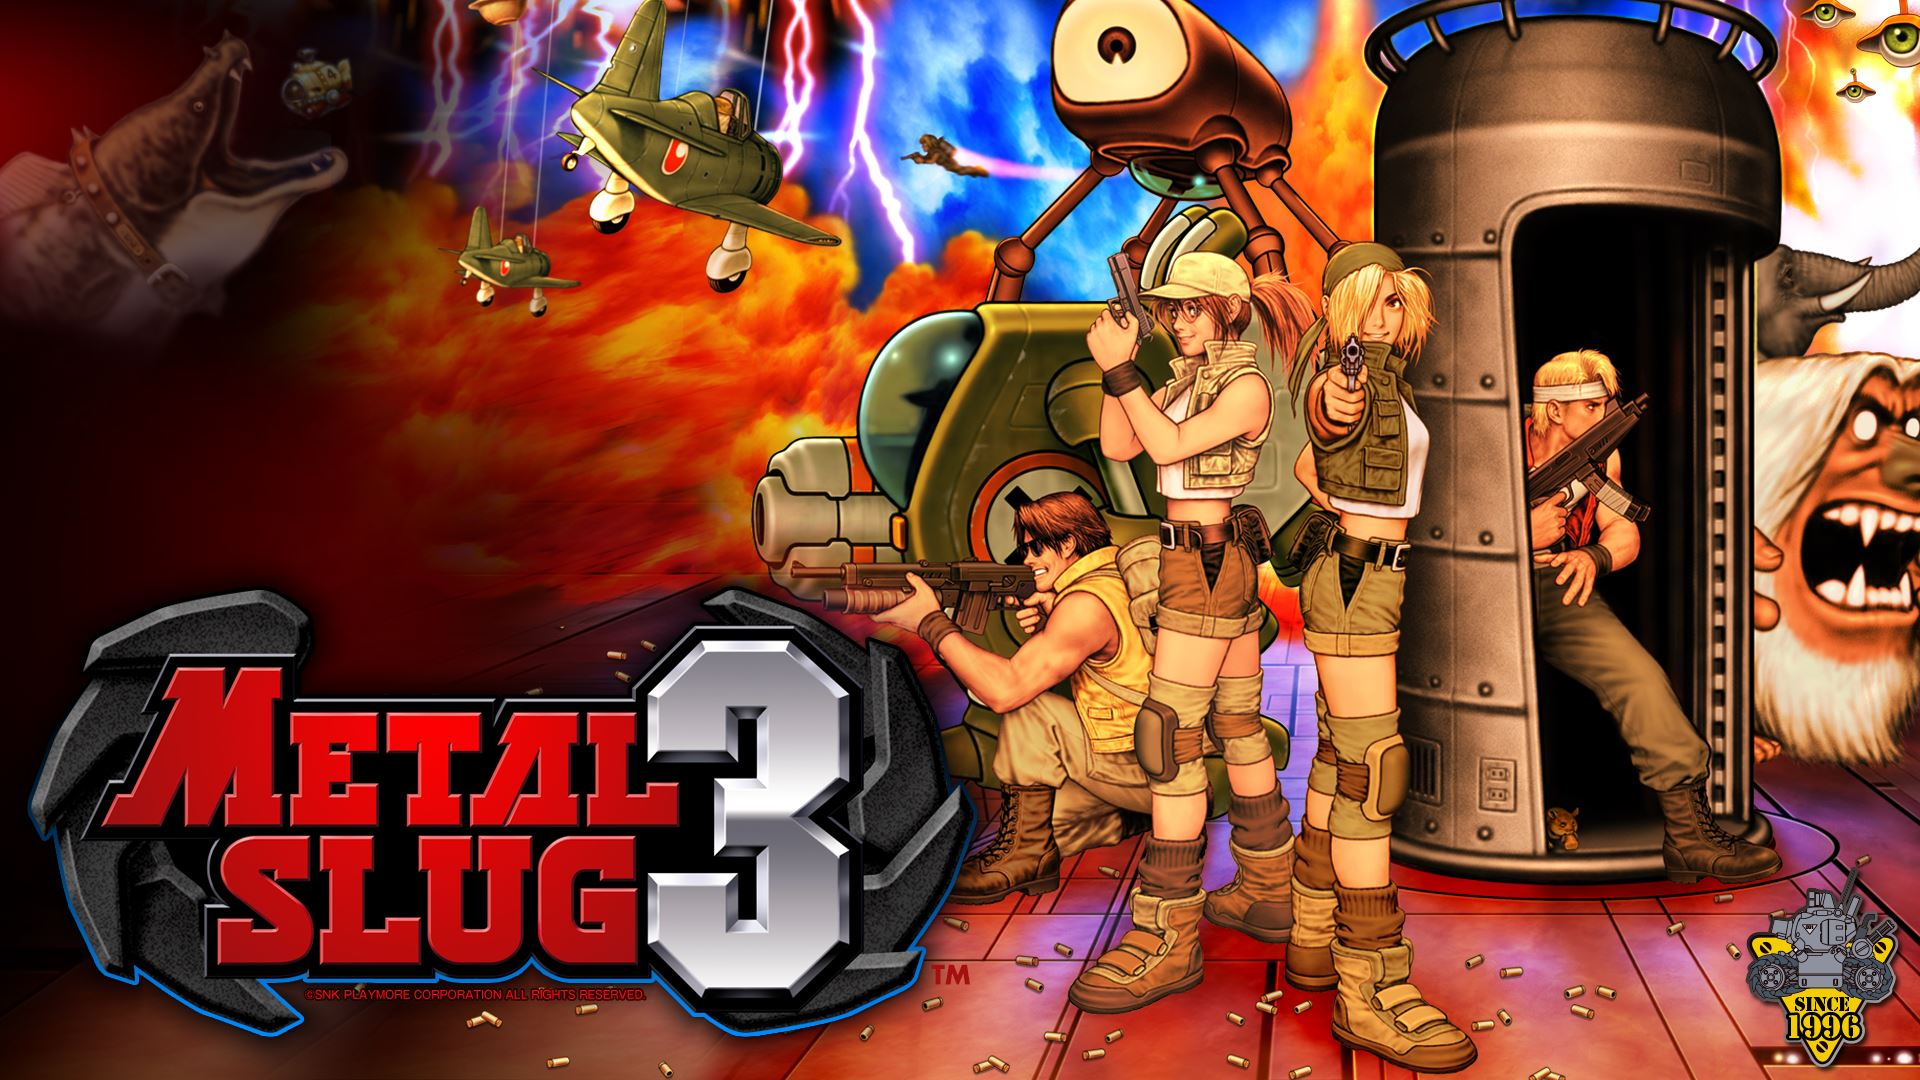 All your favorite characters are back in Metal Slug 3